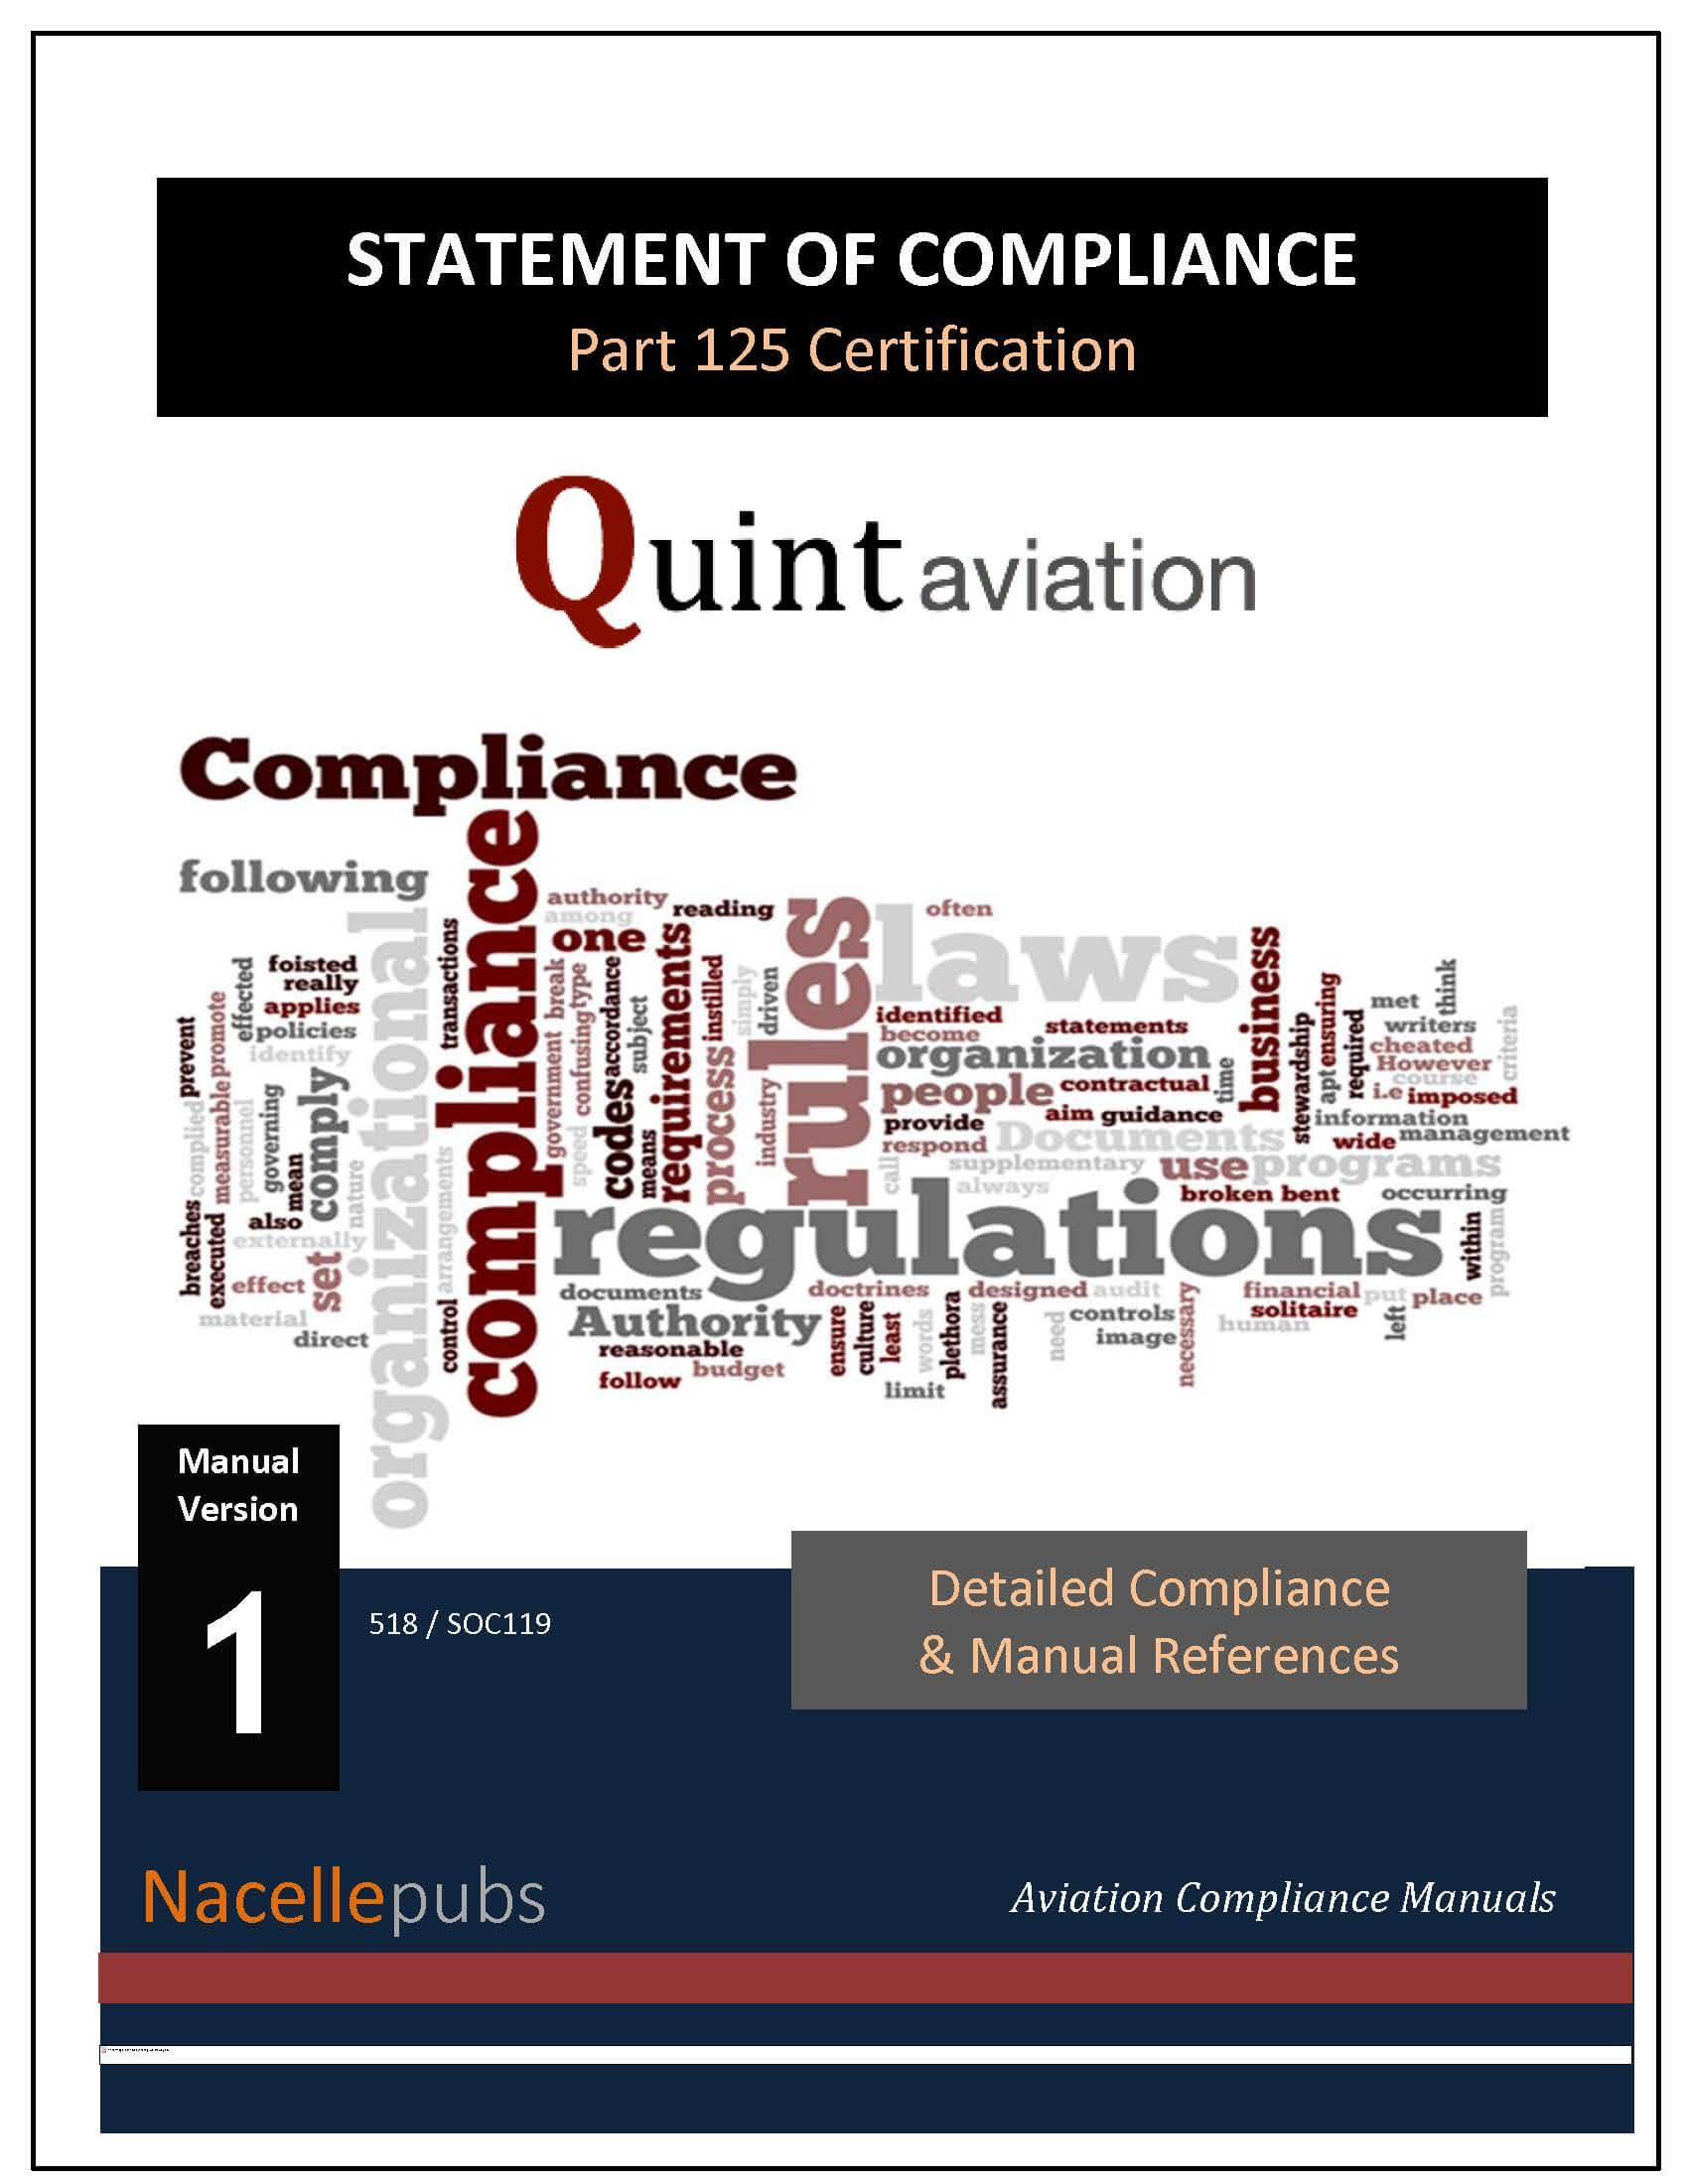 FAA Part 125 Statement of Compliance (SOC)